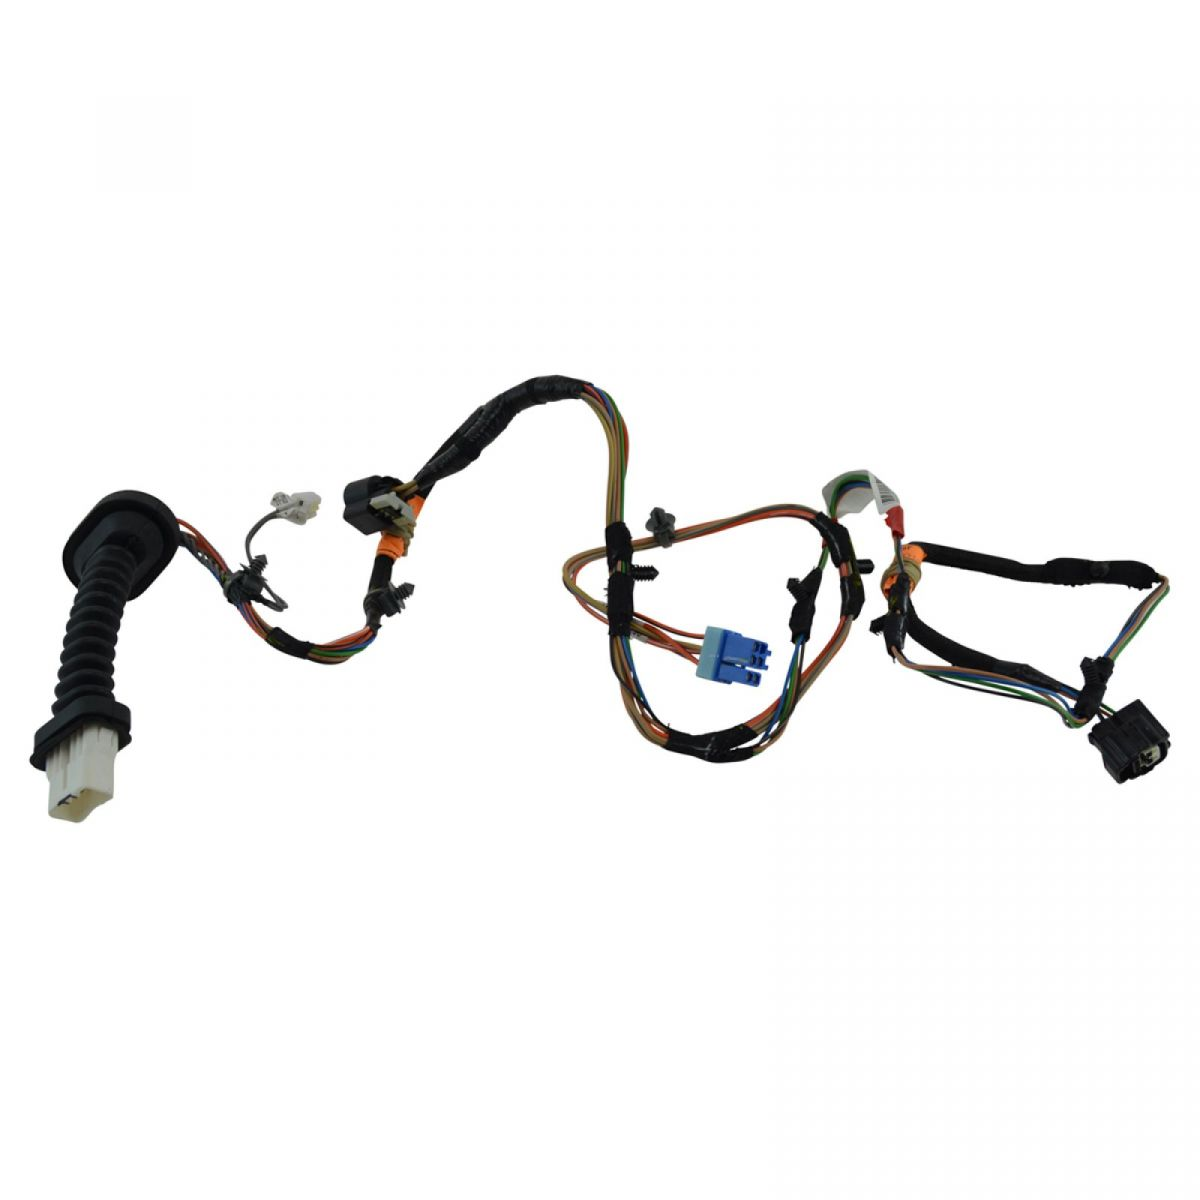 AM 3783557712 oem 56051393ac rear door wiring harness for 06 09 dodge ram mega Dodge Transmission Wiring Harness at panicattacktreatment.co